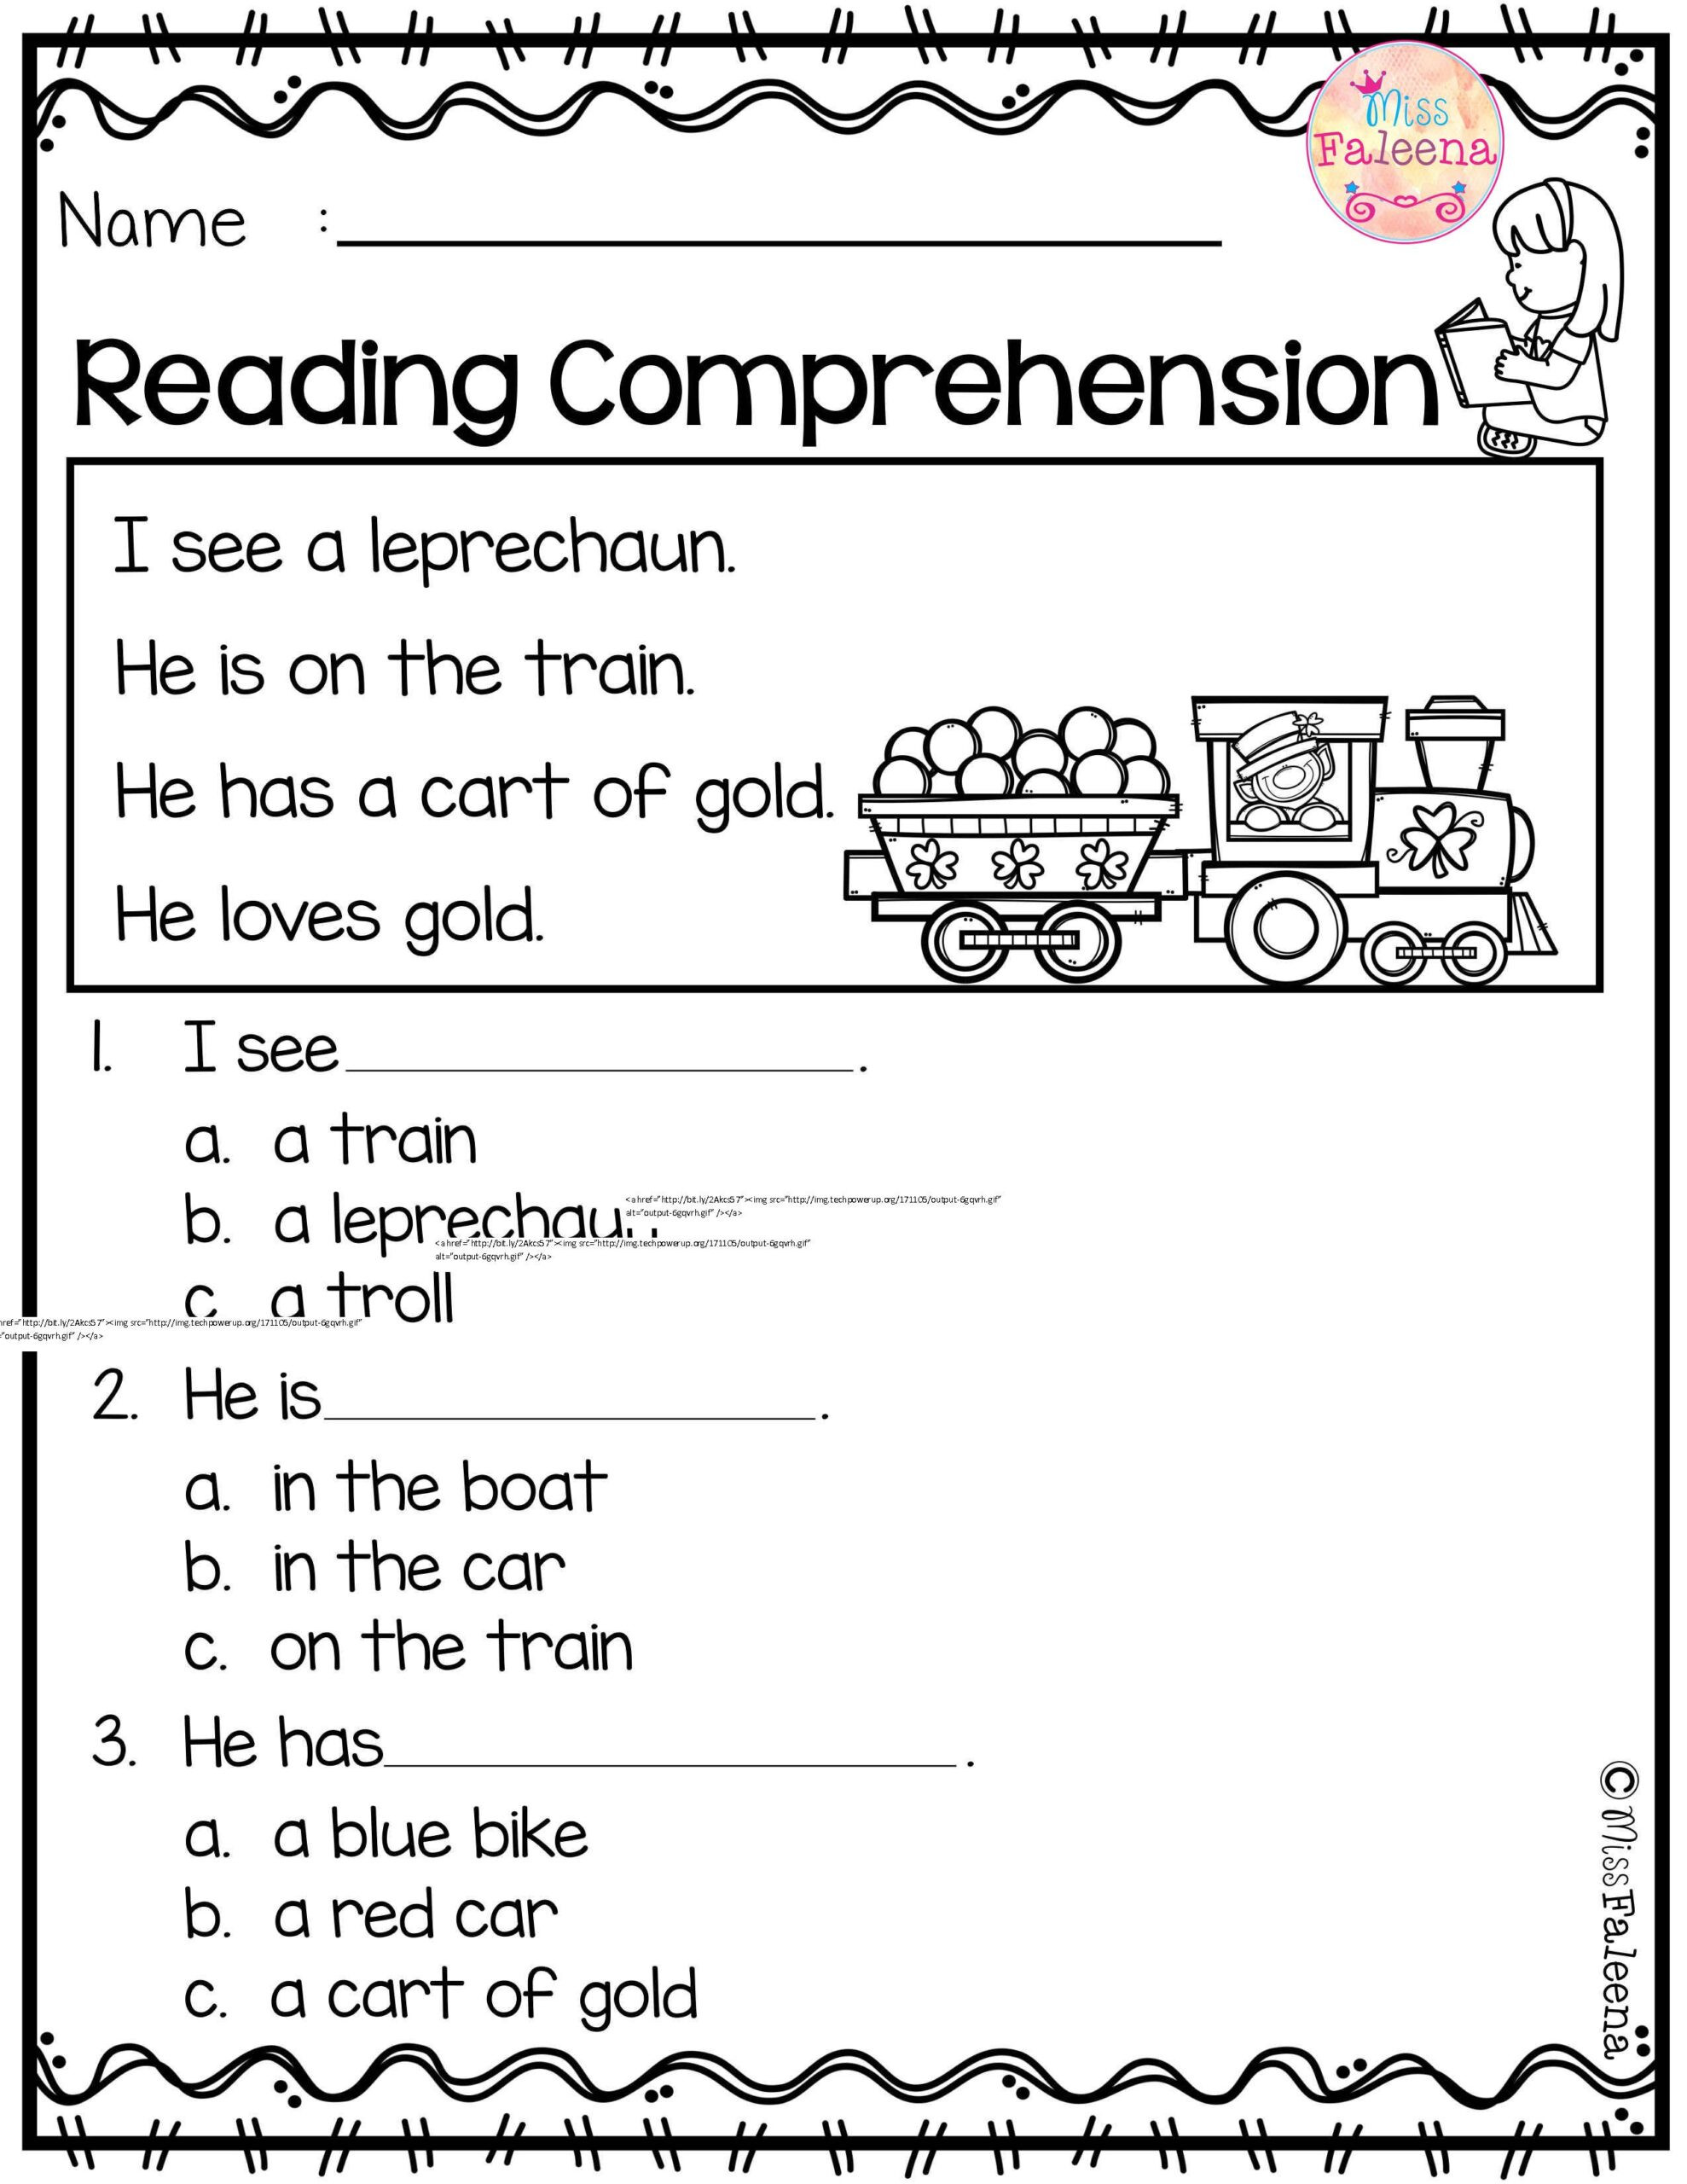 Comprehension Worksheets for First Grade March Reading Prehension English Worksheets for